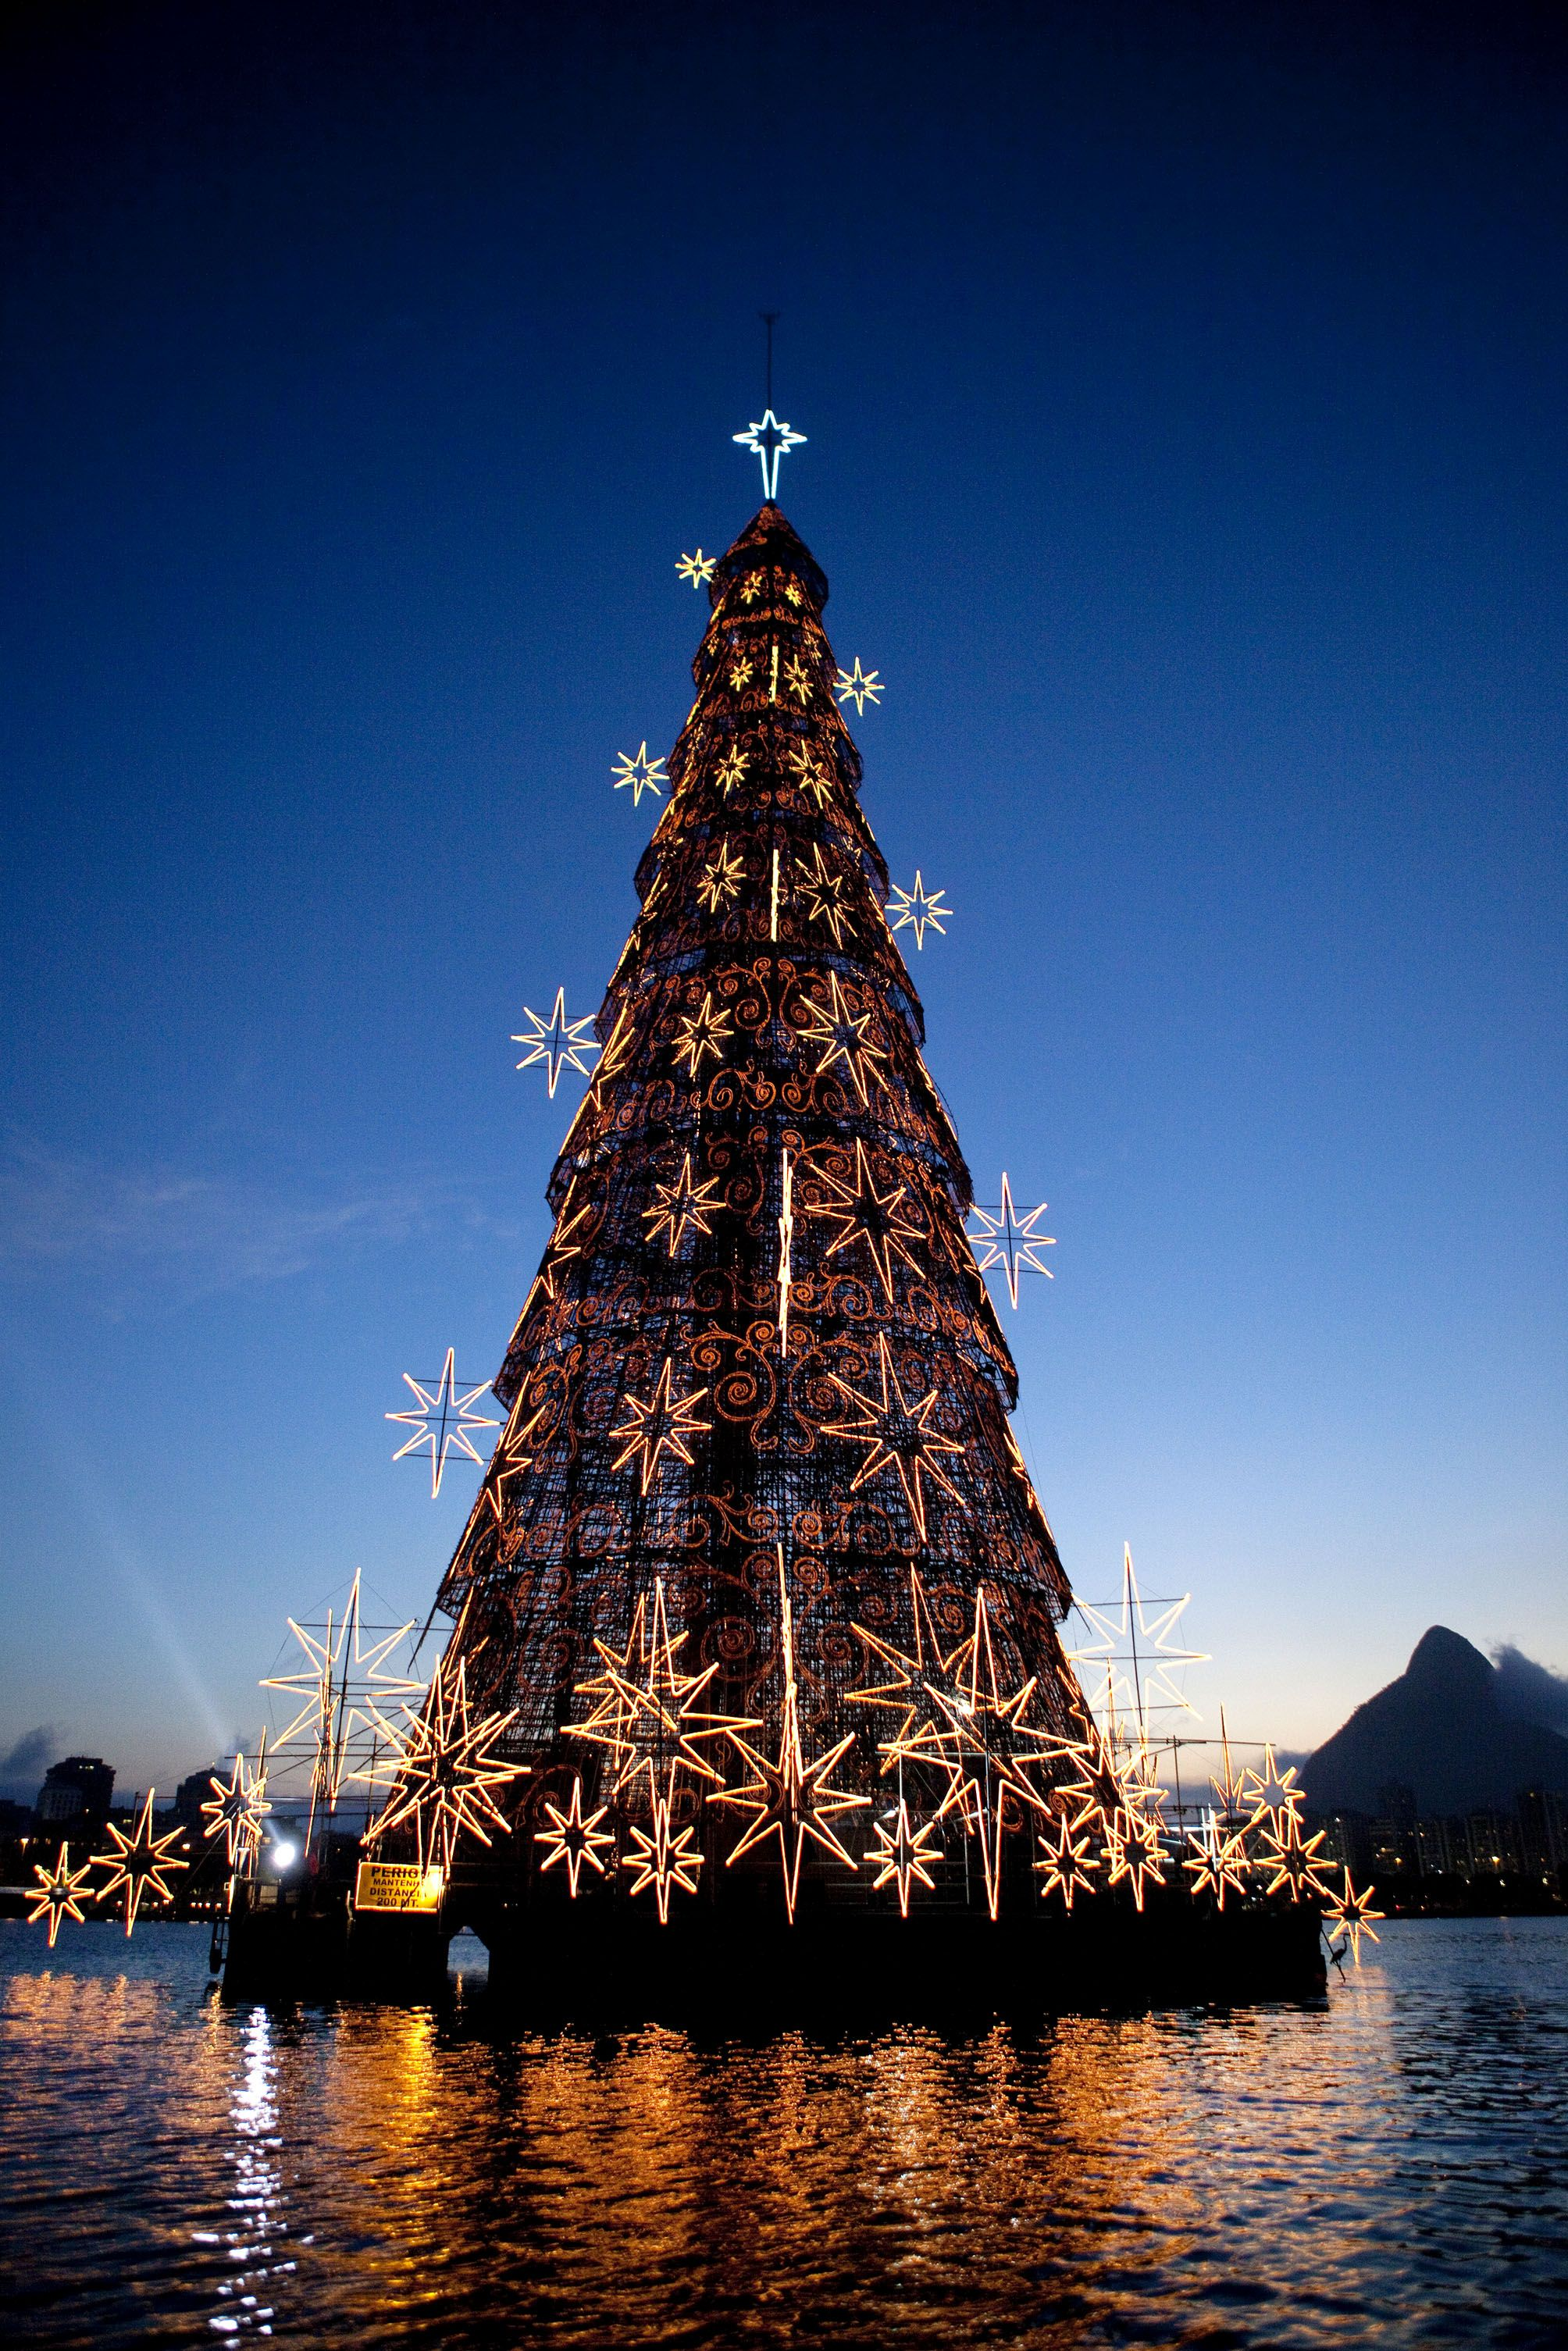 worlds largest floating christmas tree rio de janeiro brazil littlepassports 12daysofchristmas - Biggest Christmas Tree